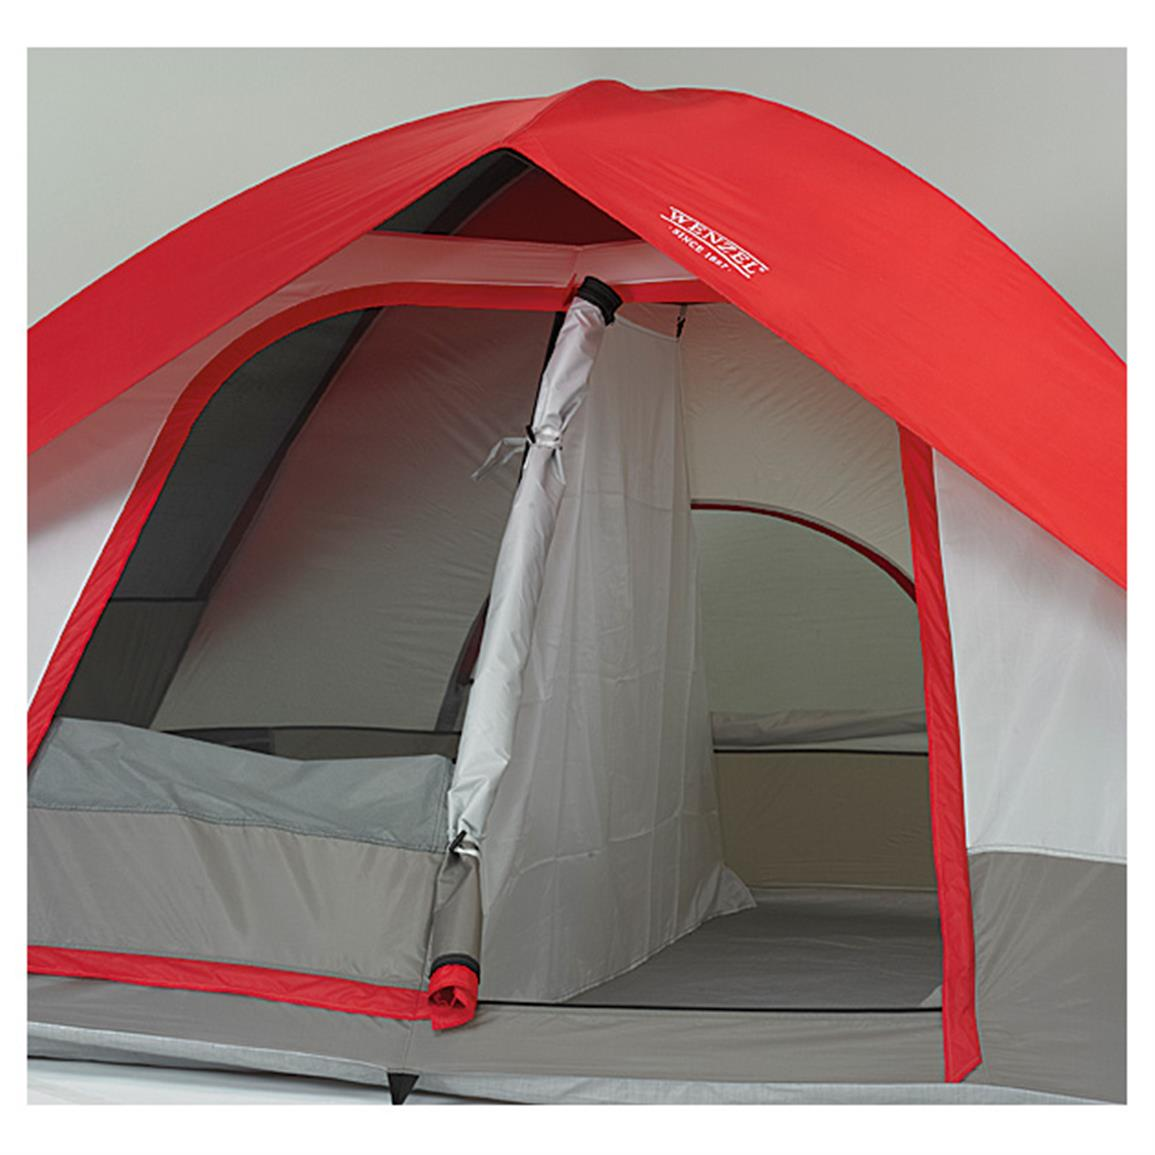 Tents could be anything from easy sanctuaries improved aluminium posts to huge canvas shelters big enough to keep thirty iniduals. Unless your family ... & Family Tent Guides